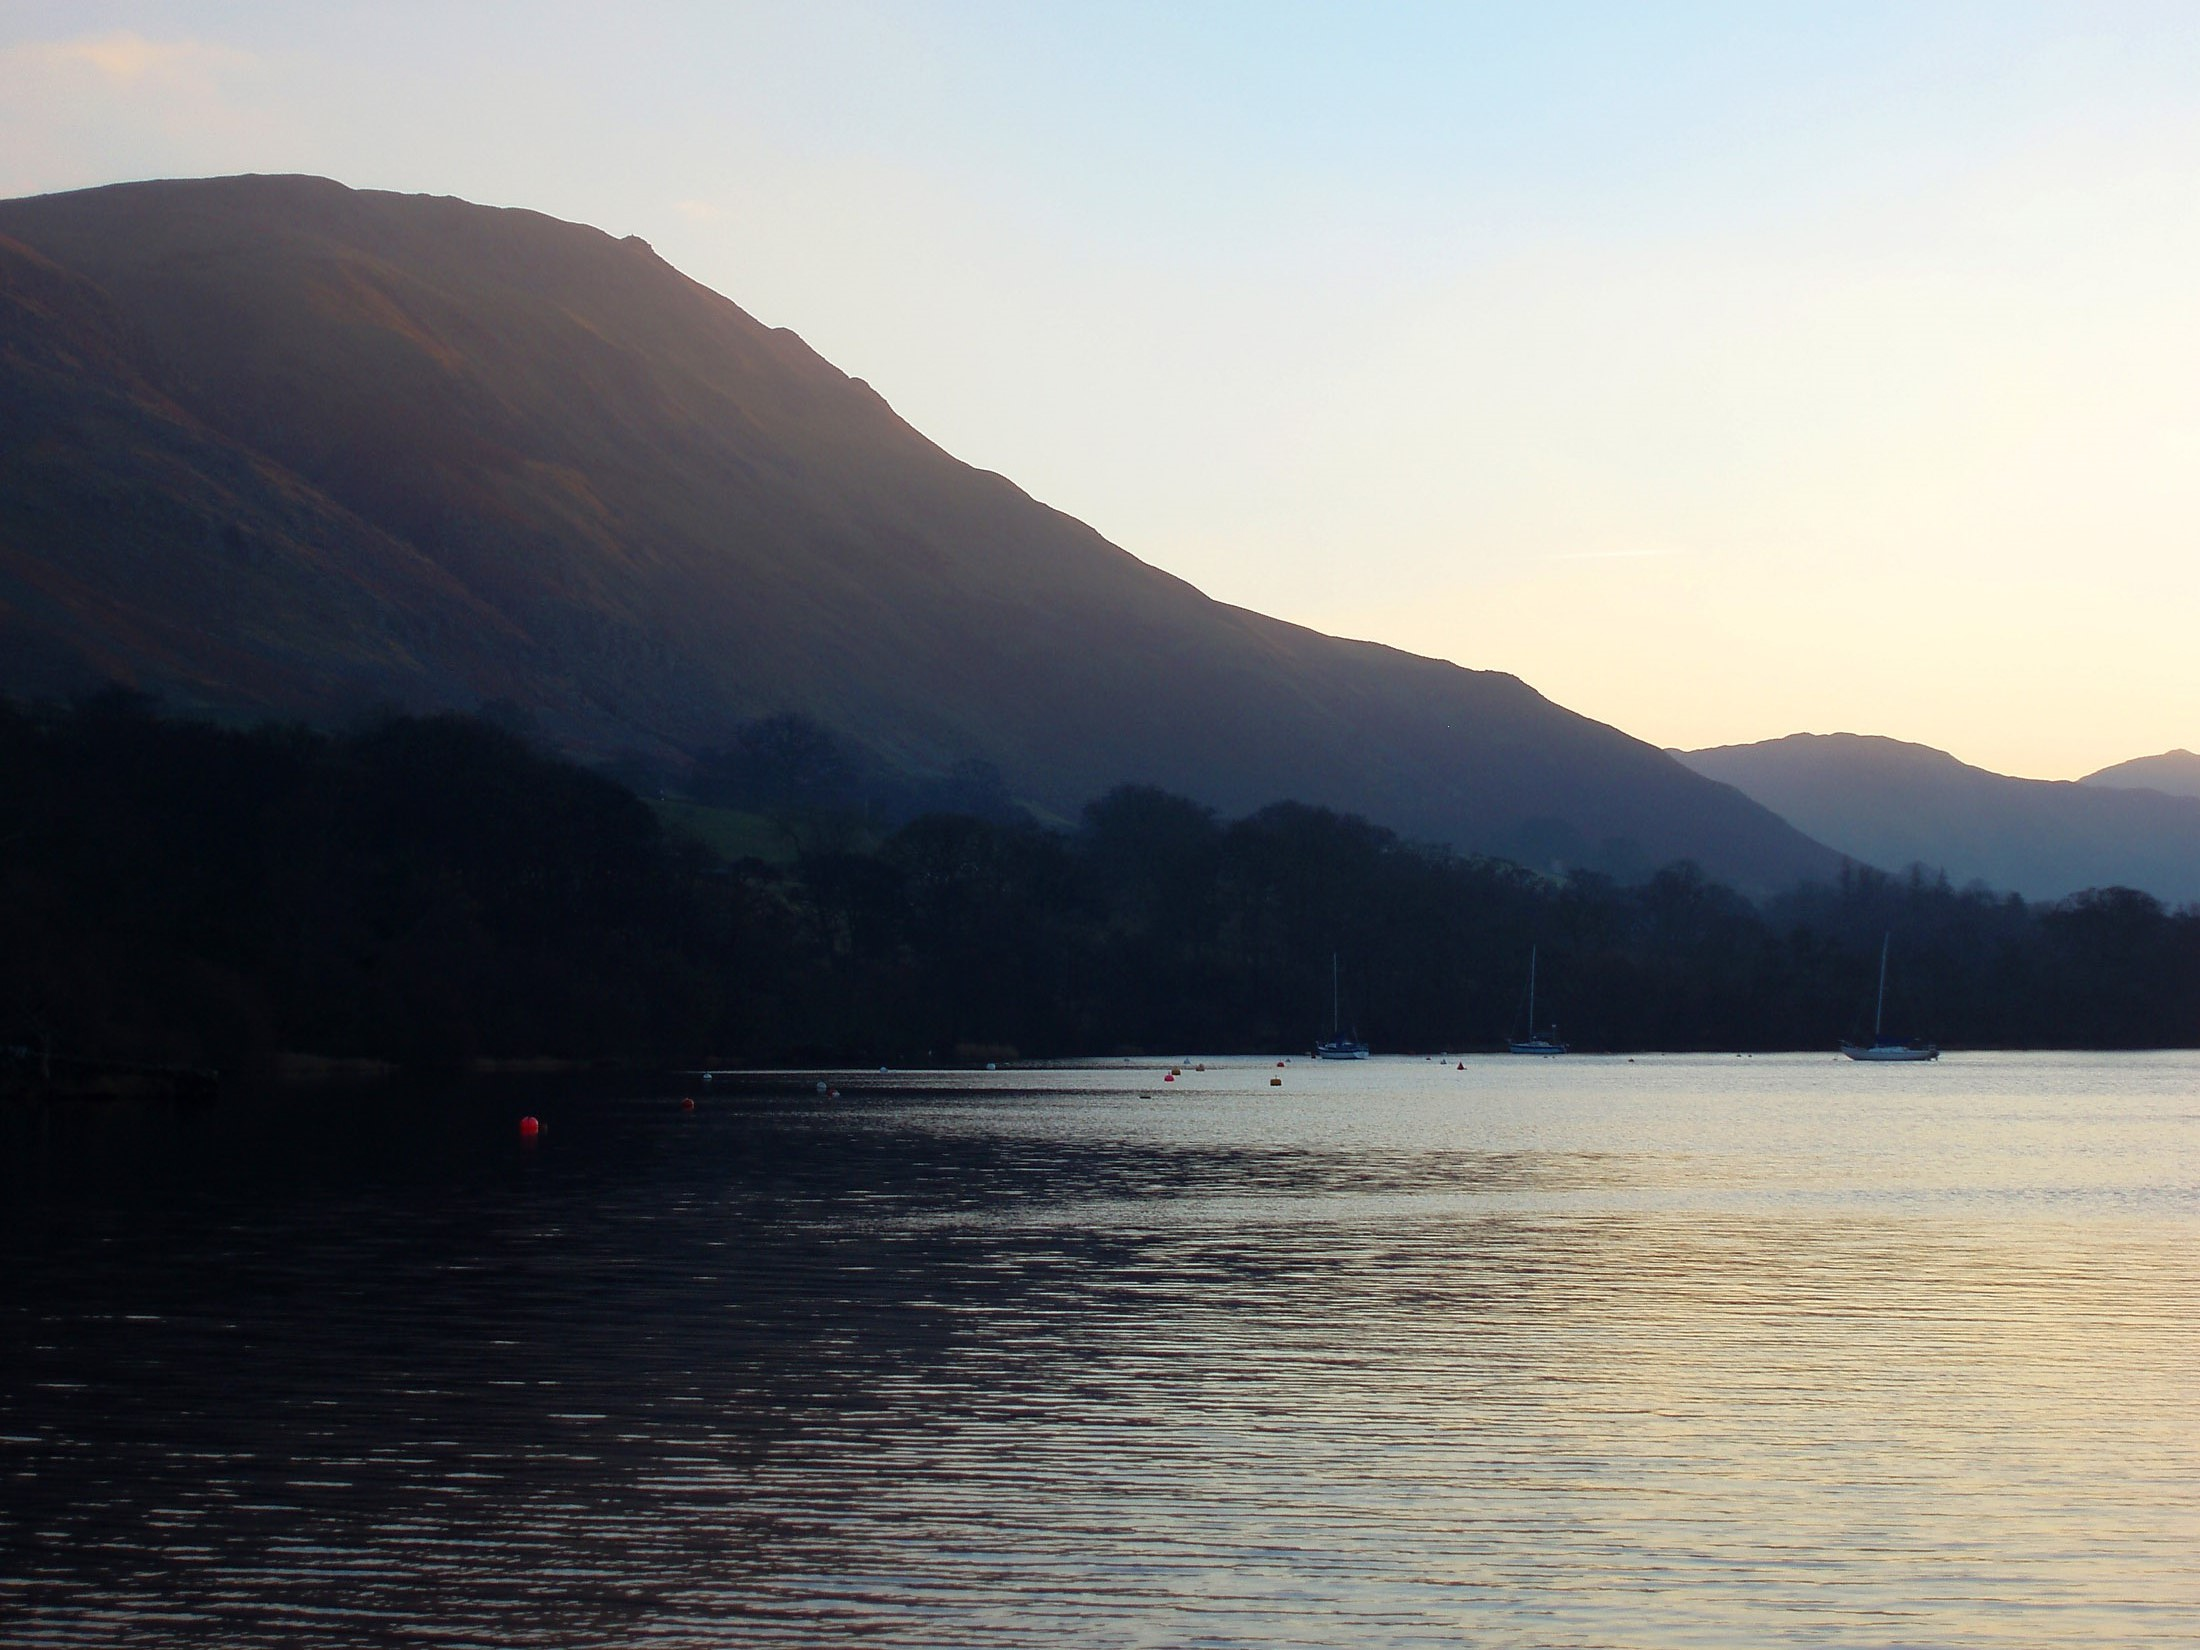 ullswater and surrounding hills at sunset